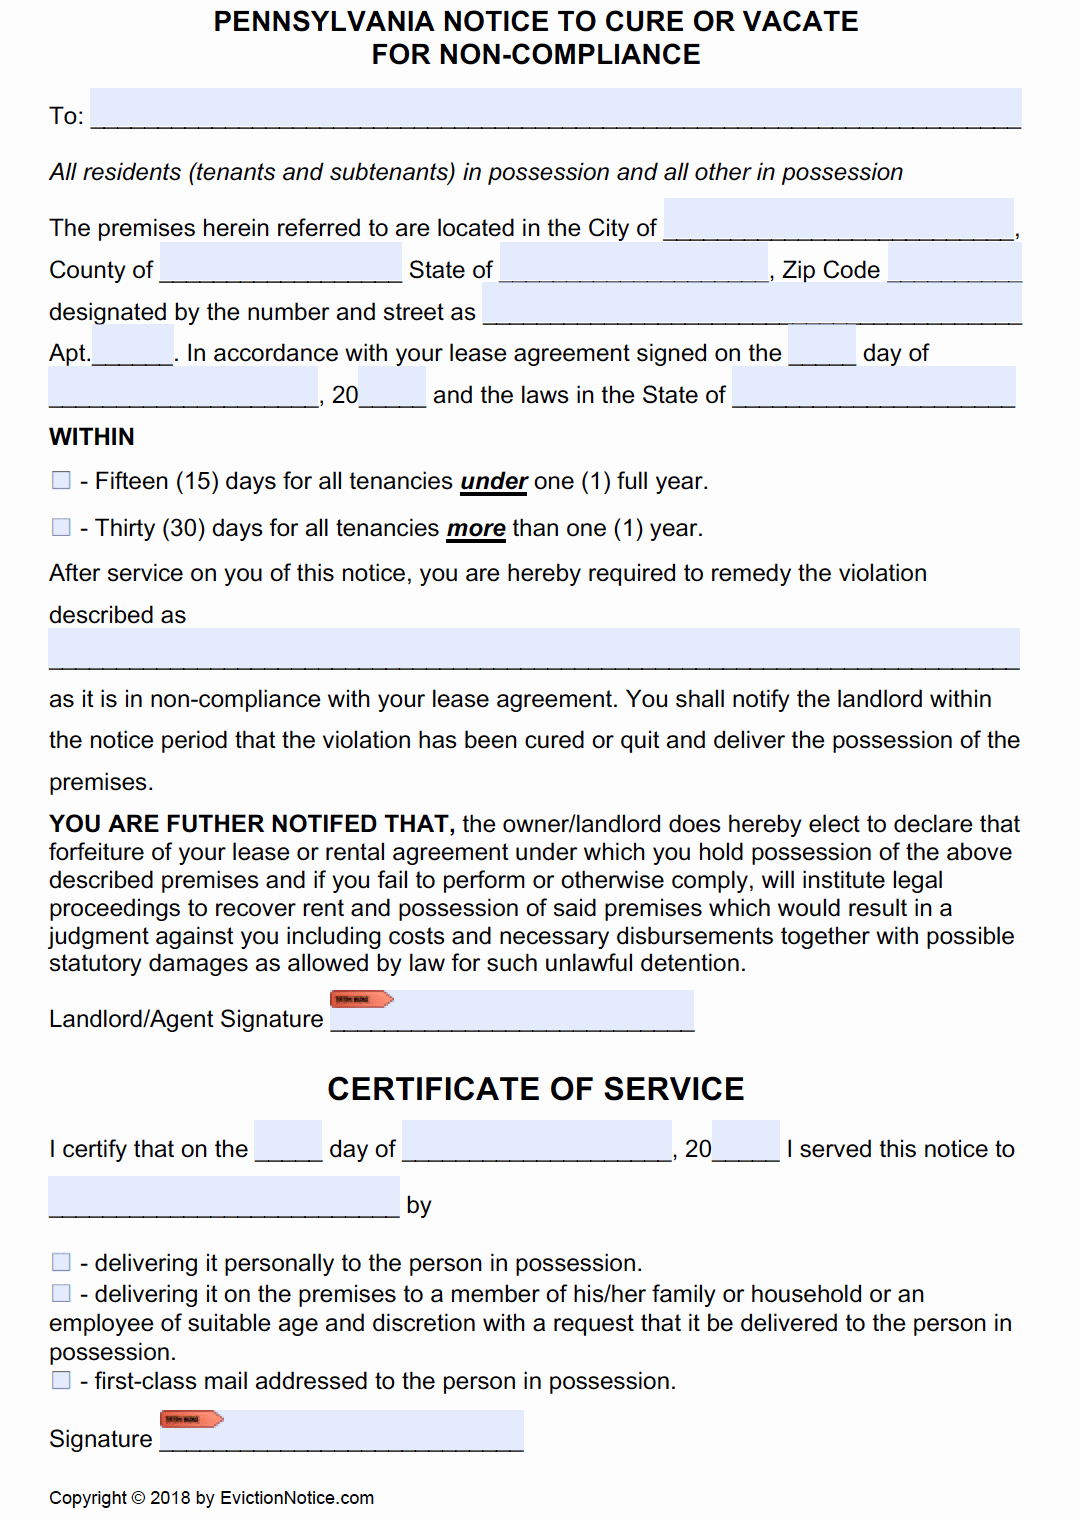 Eviction Notice Pa Template Unique Free Pennsylvania Eviction Notice Templates